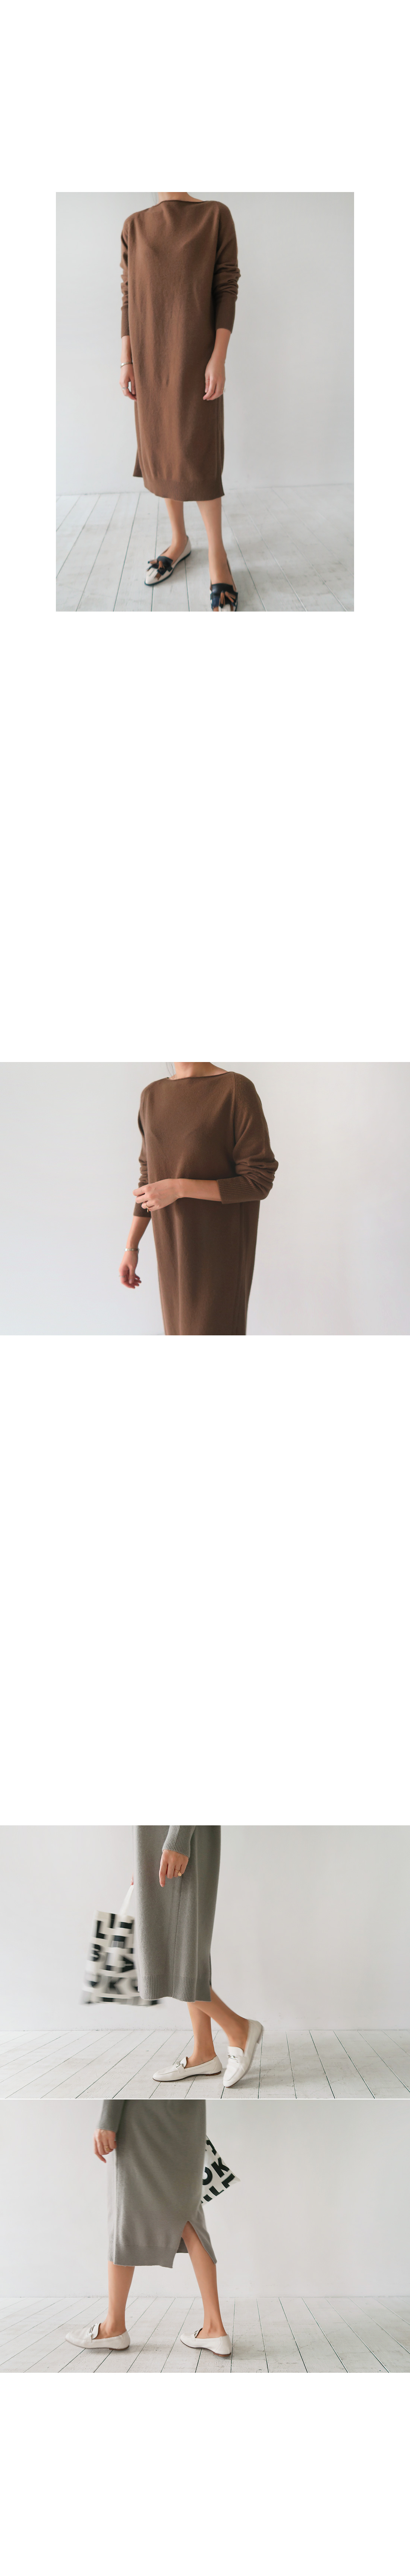 Boat Neck Knit Midi Dress|